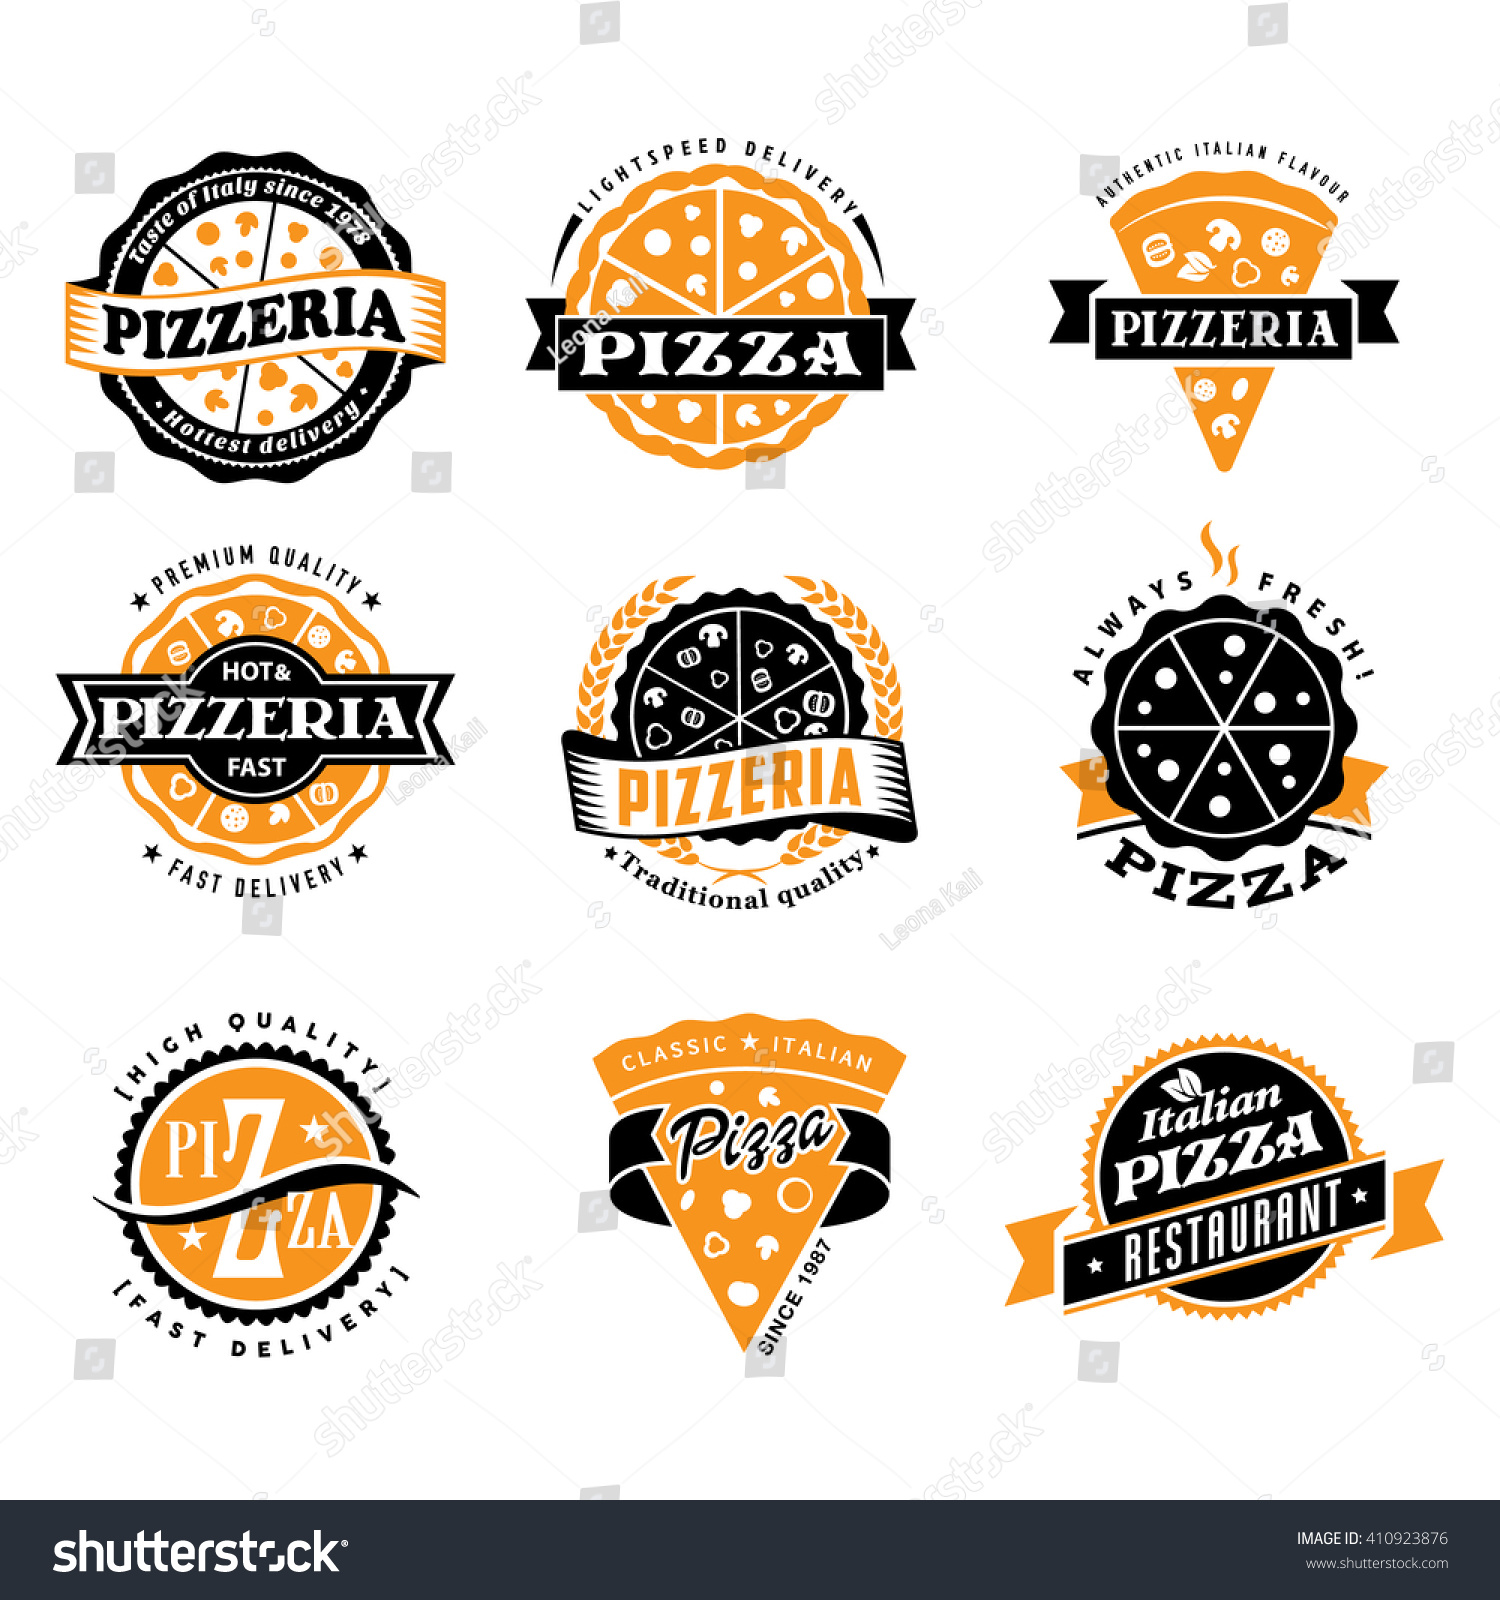 vector pizza logo set vintage food stock vector royalty free